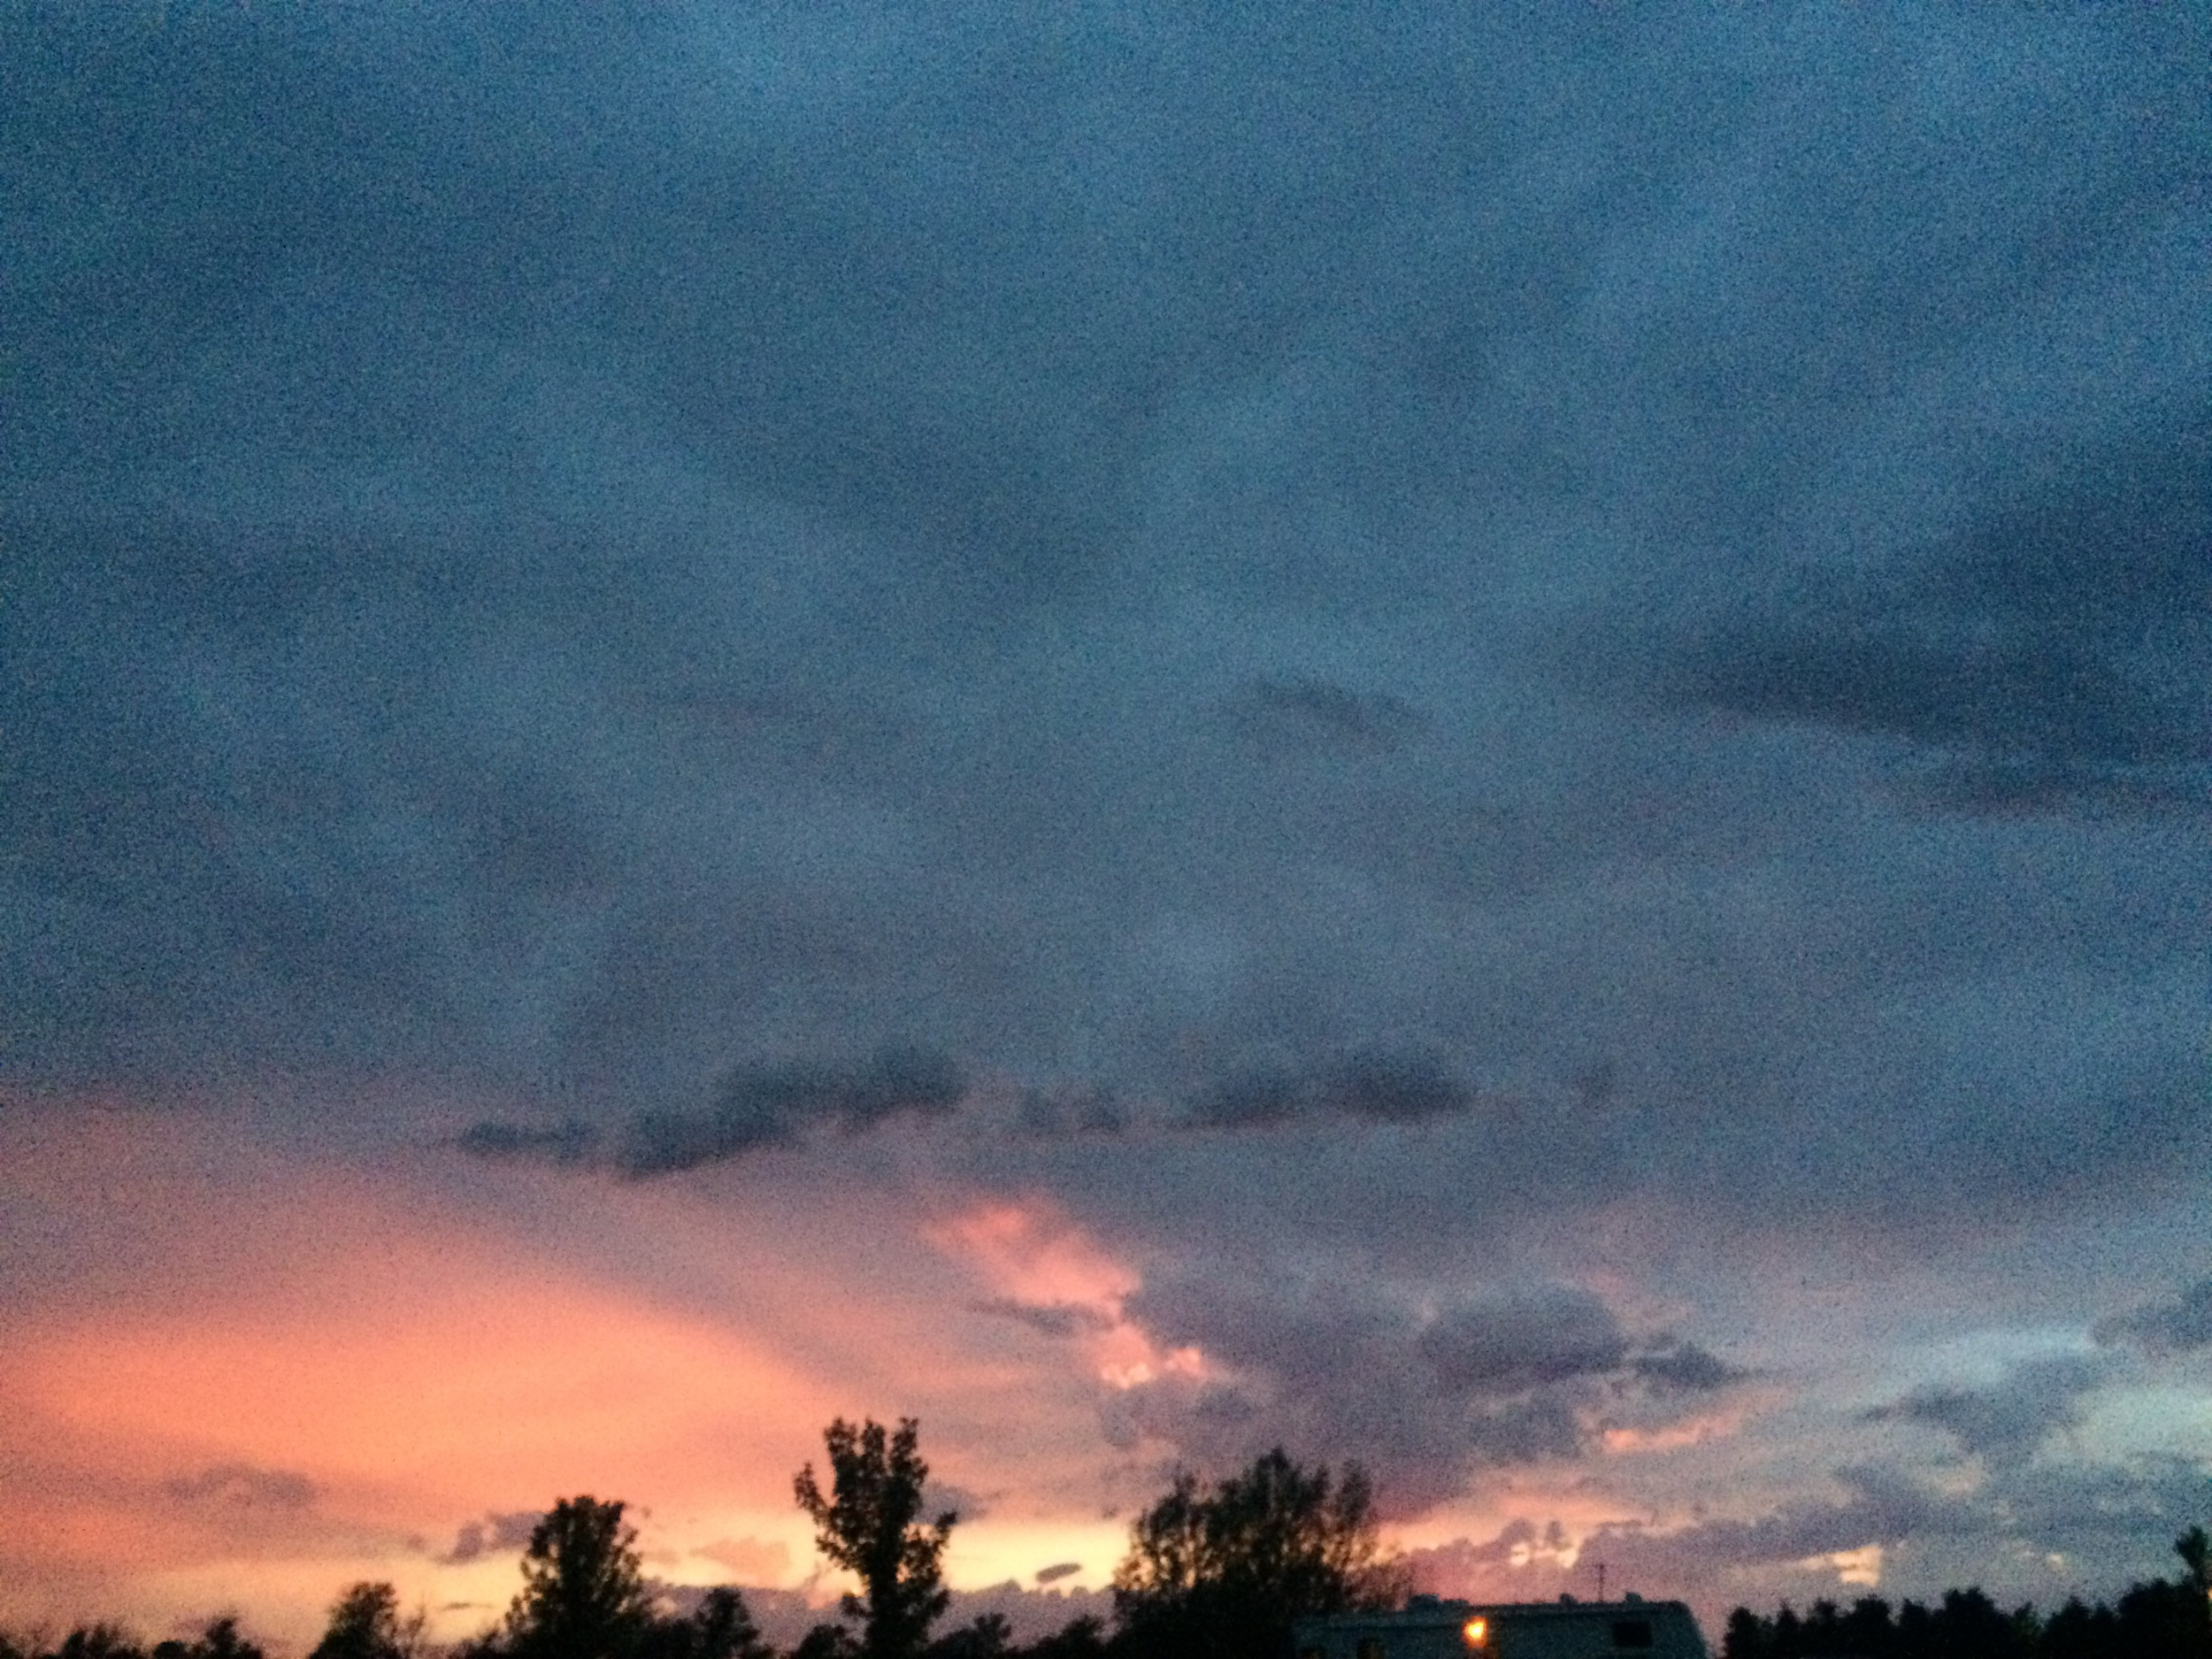 No filter on this insane thunder sunset